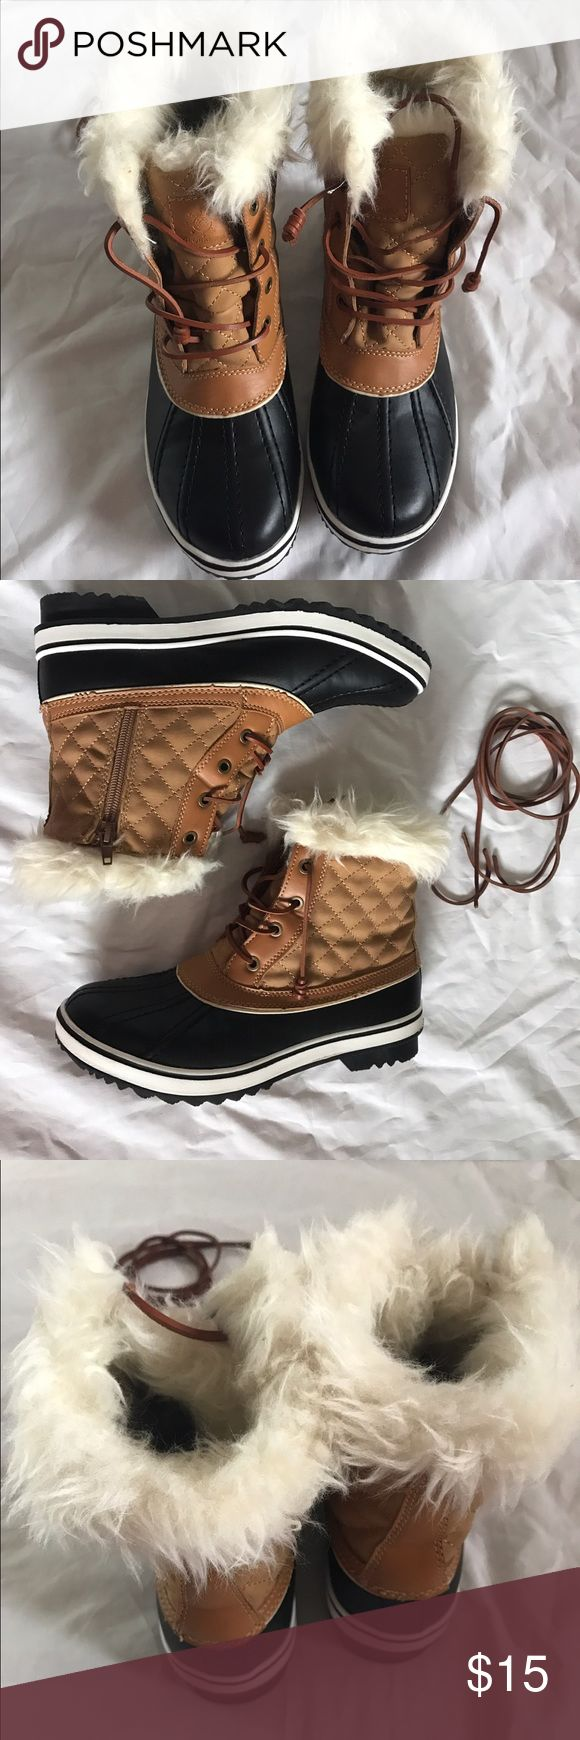 Winter Snow Boot These gorgeous snow boots will go with anything. They have never been worn and feature neutral colors with suede laces. These boots look great with jeans or tights. Both boots have a side zipper. Shoes Winter & Rain Boots